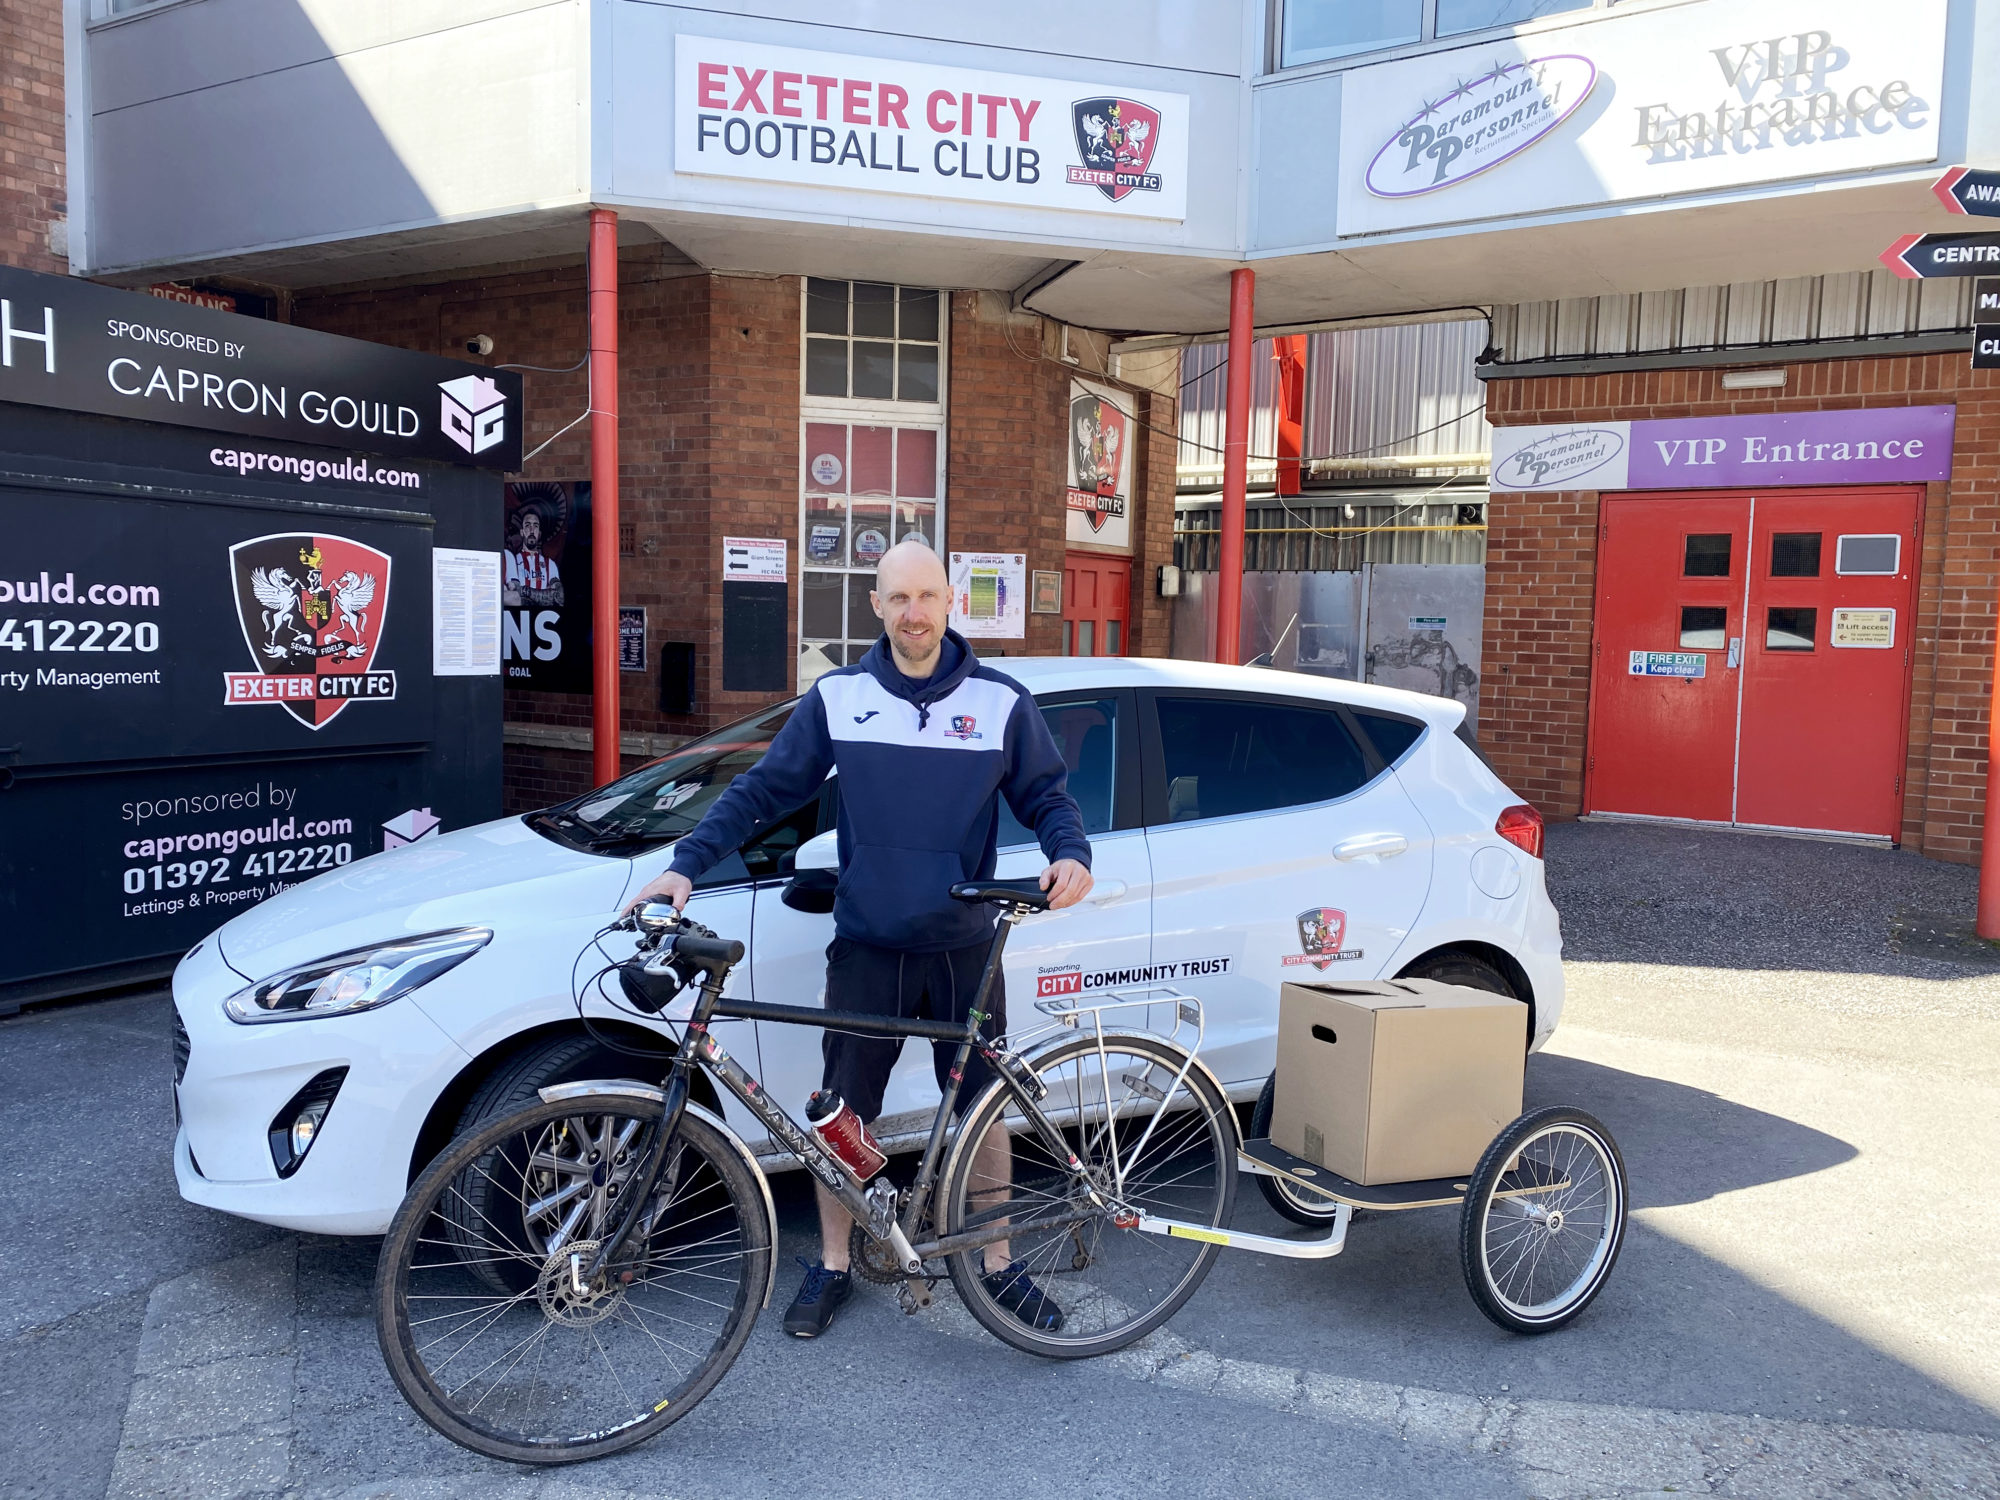 Andy O'Doherty outside Exeter City Football Club with his delivery bike